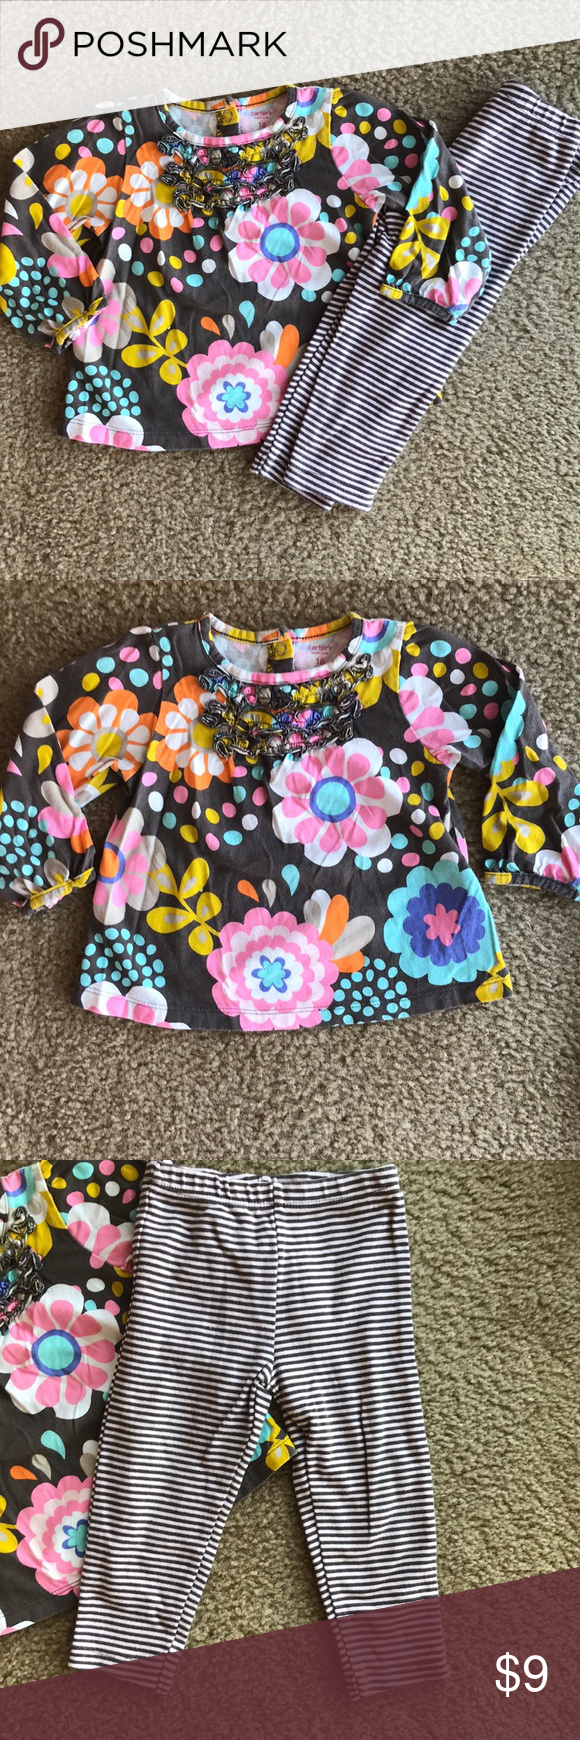 Baby Girls Floral Cardigan Top Striped Leggings Clothing Sets